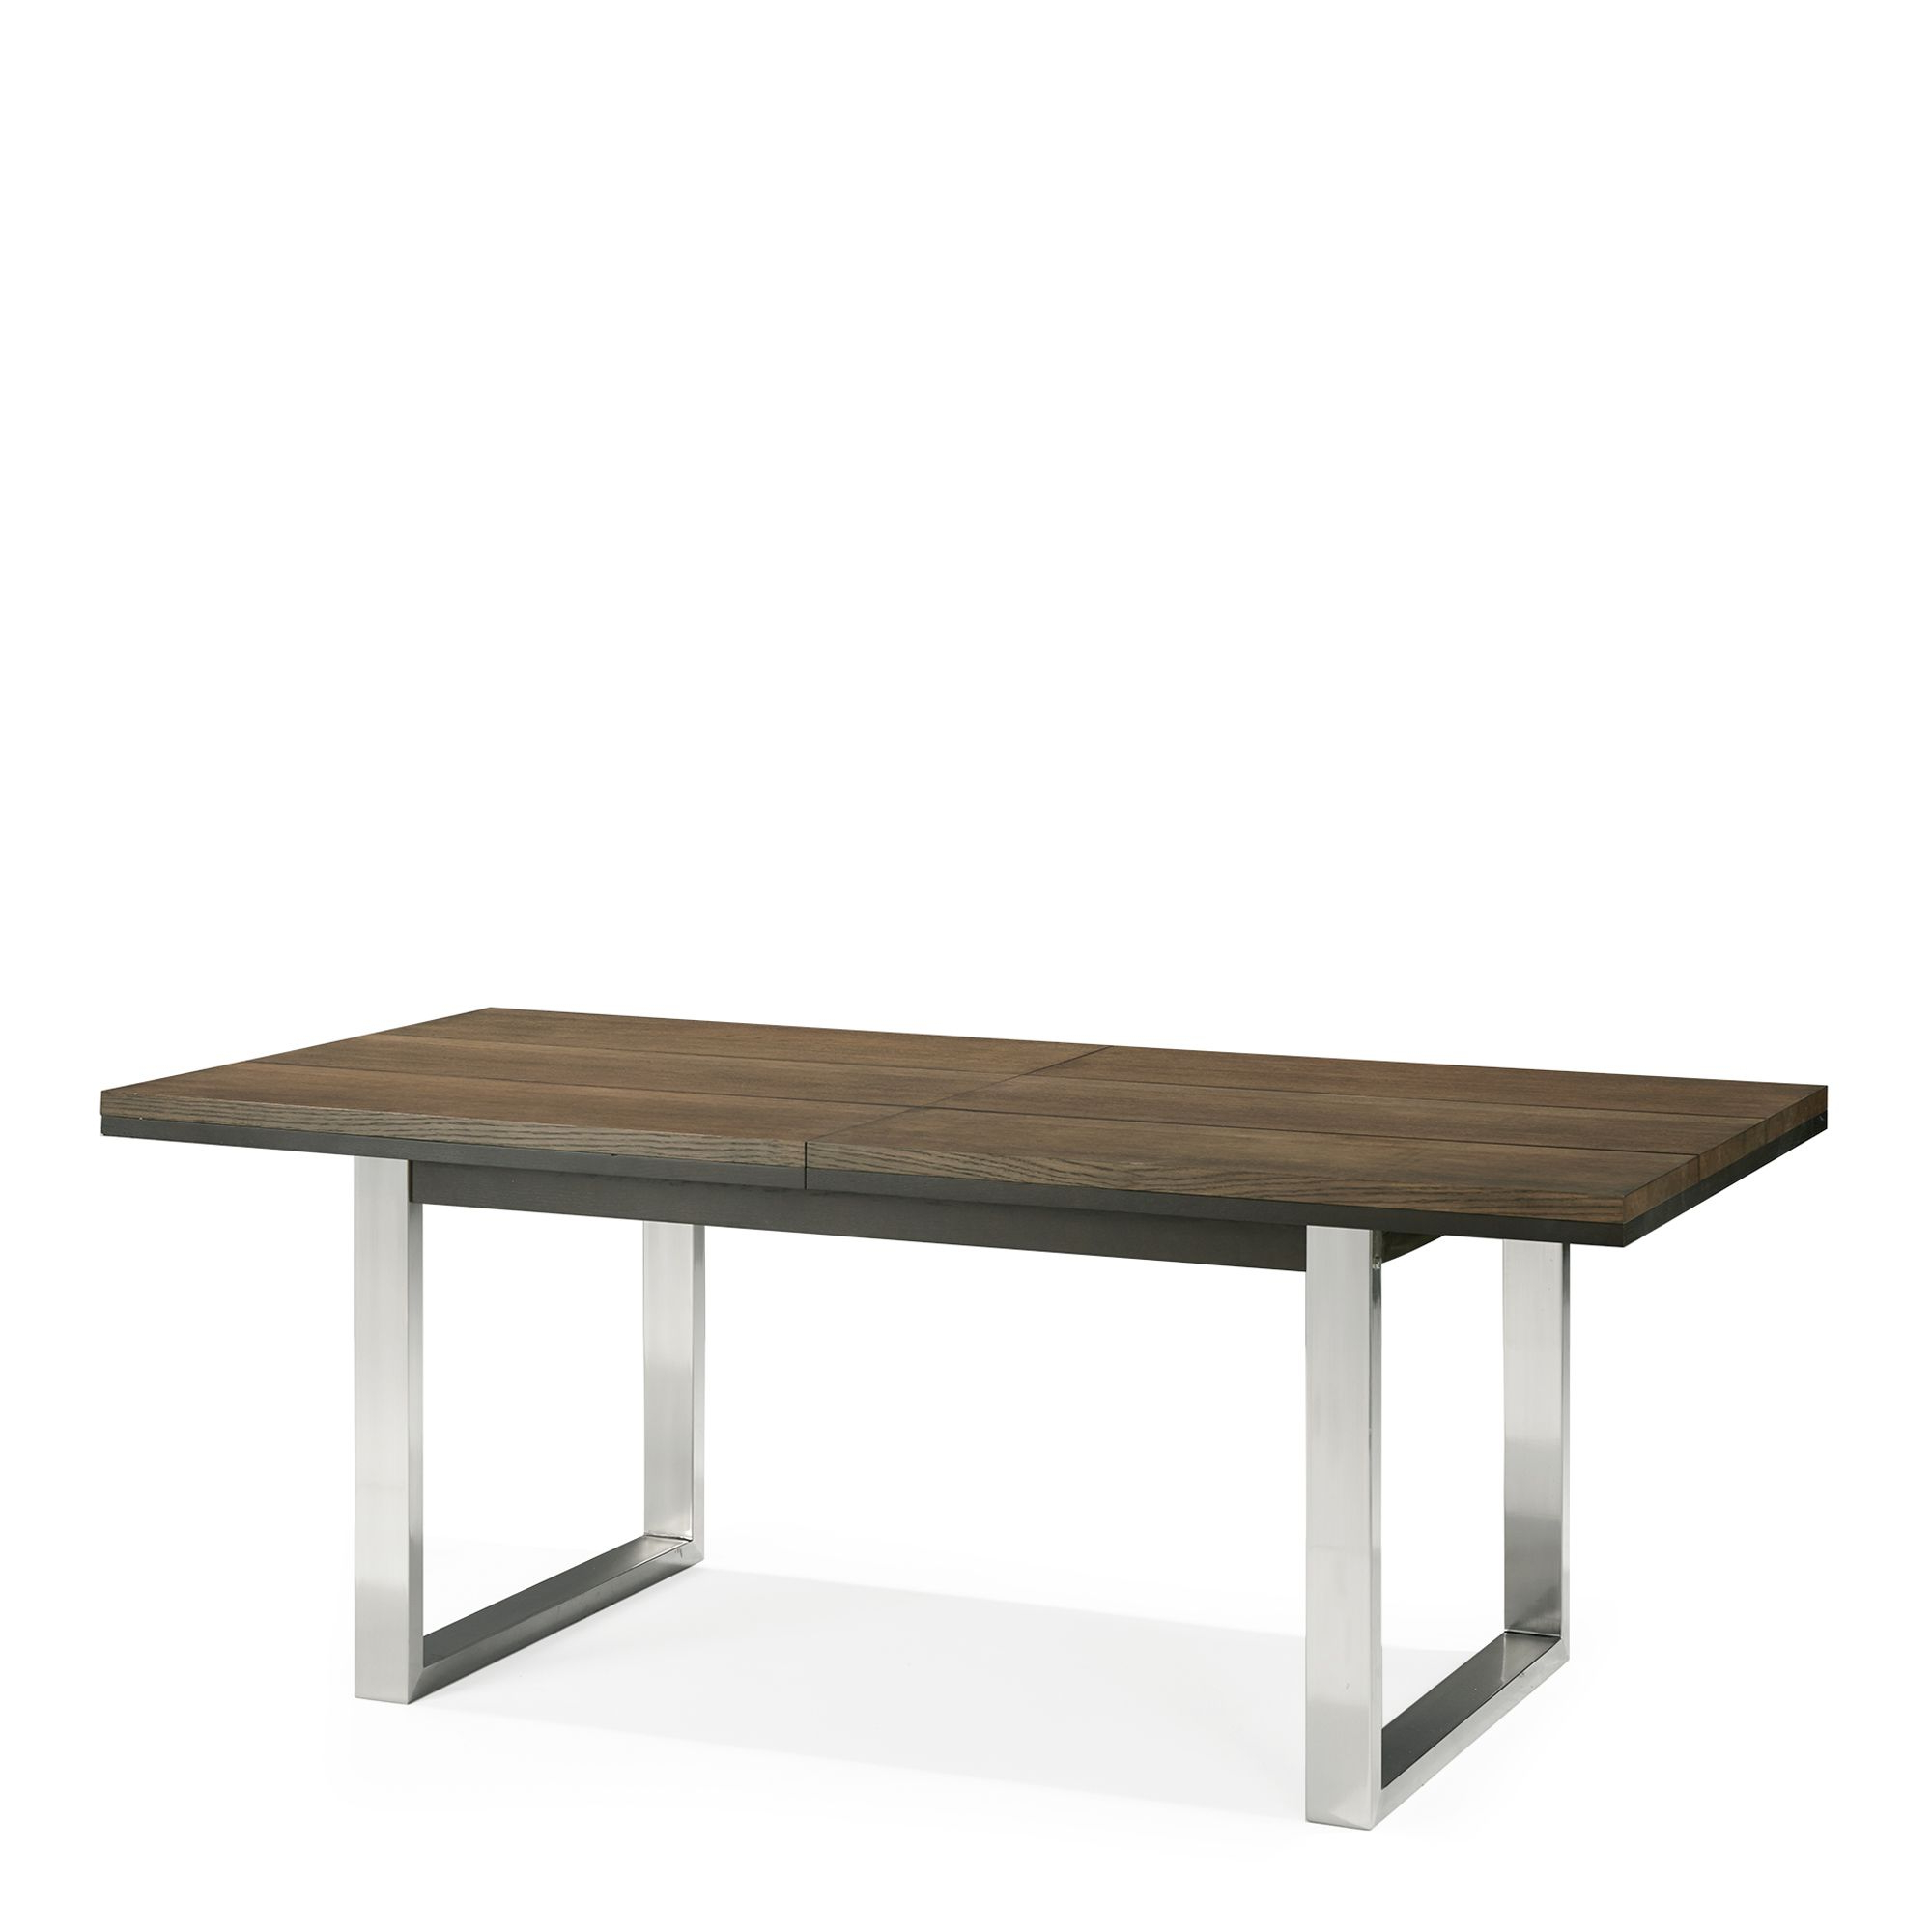 Well Known Tivoli 6 8 Extension Dining Table Regarding Extension Dining Tables (View 23 of 30)